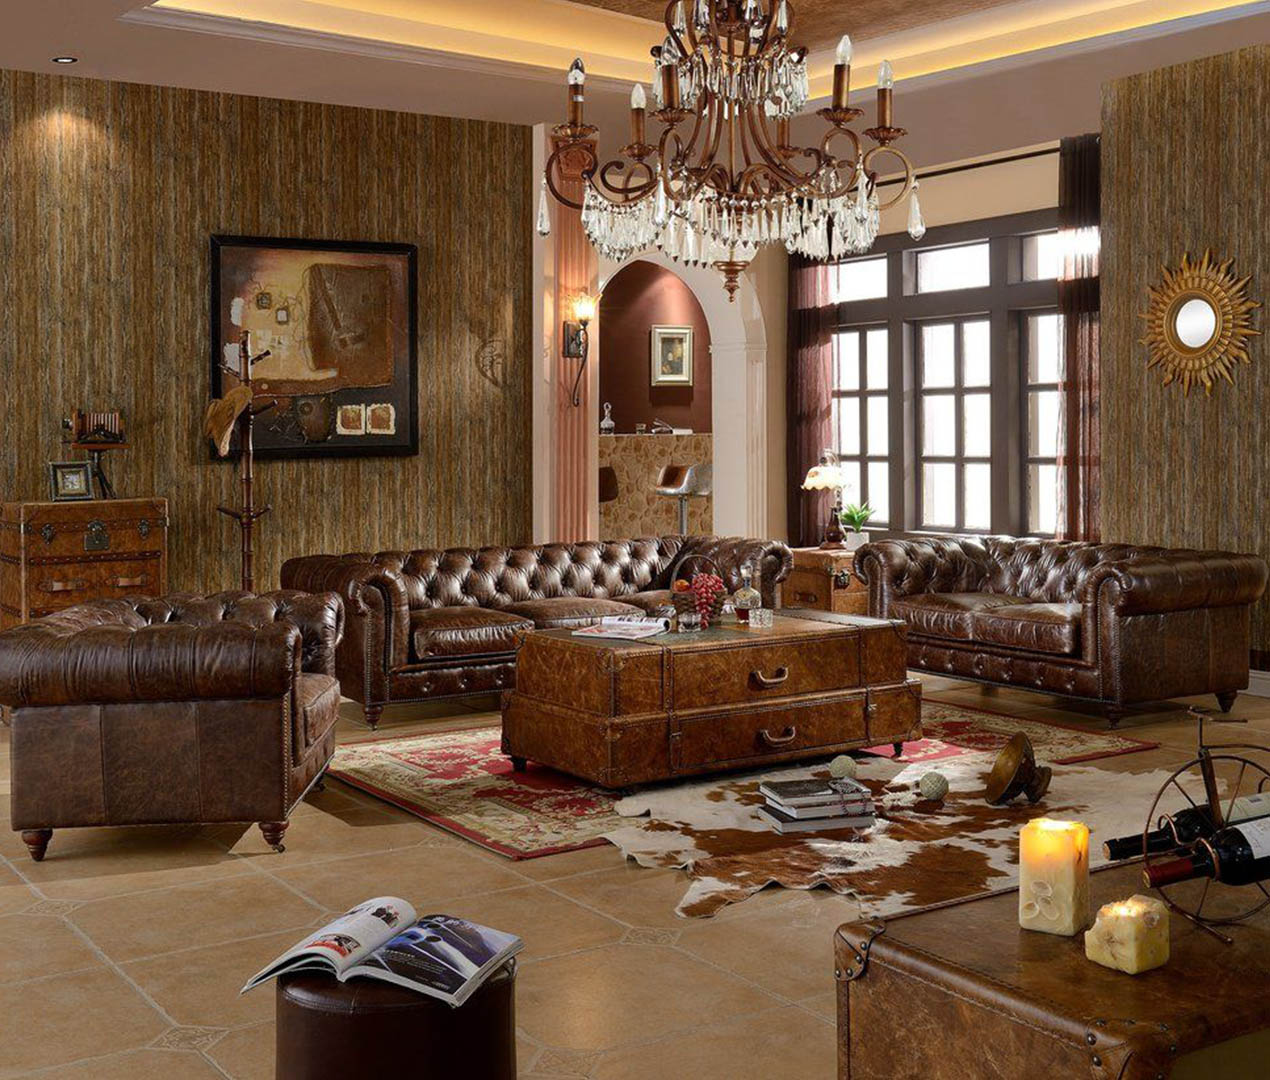 Interior Design Ideas With Leather! Design Your Perfect Home